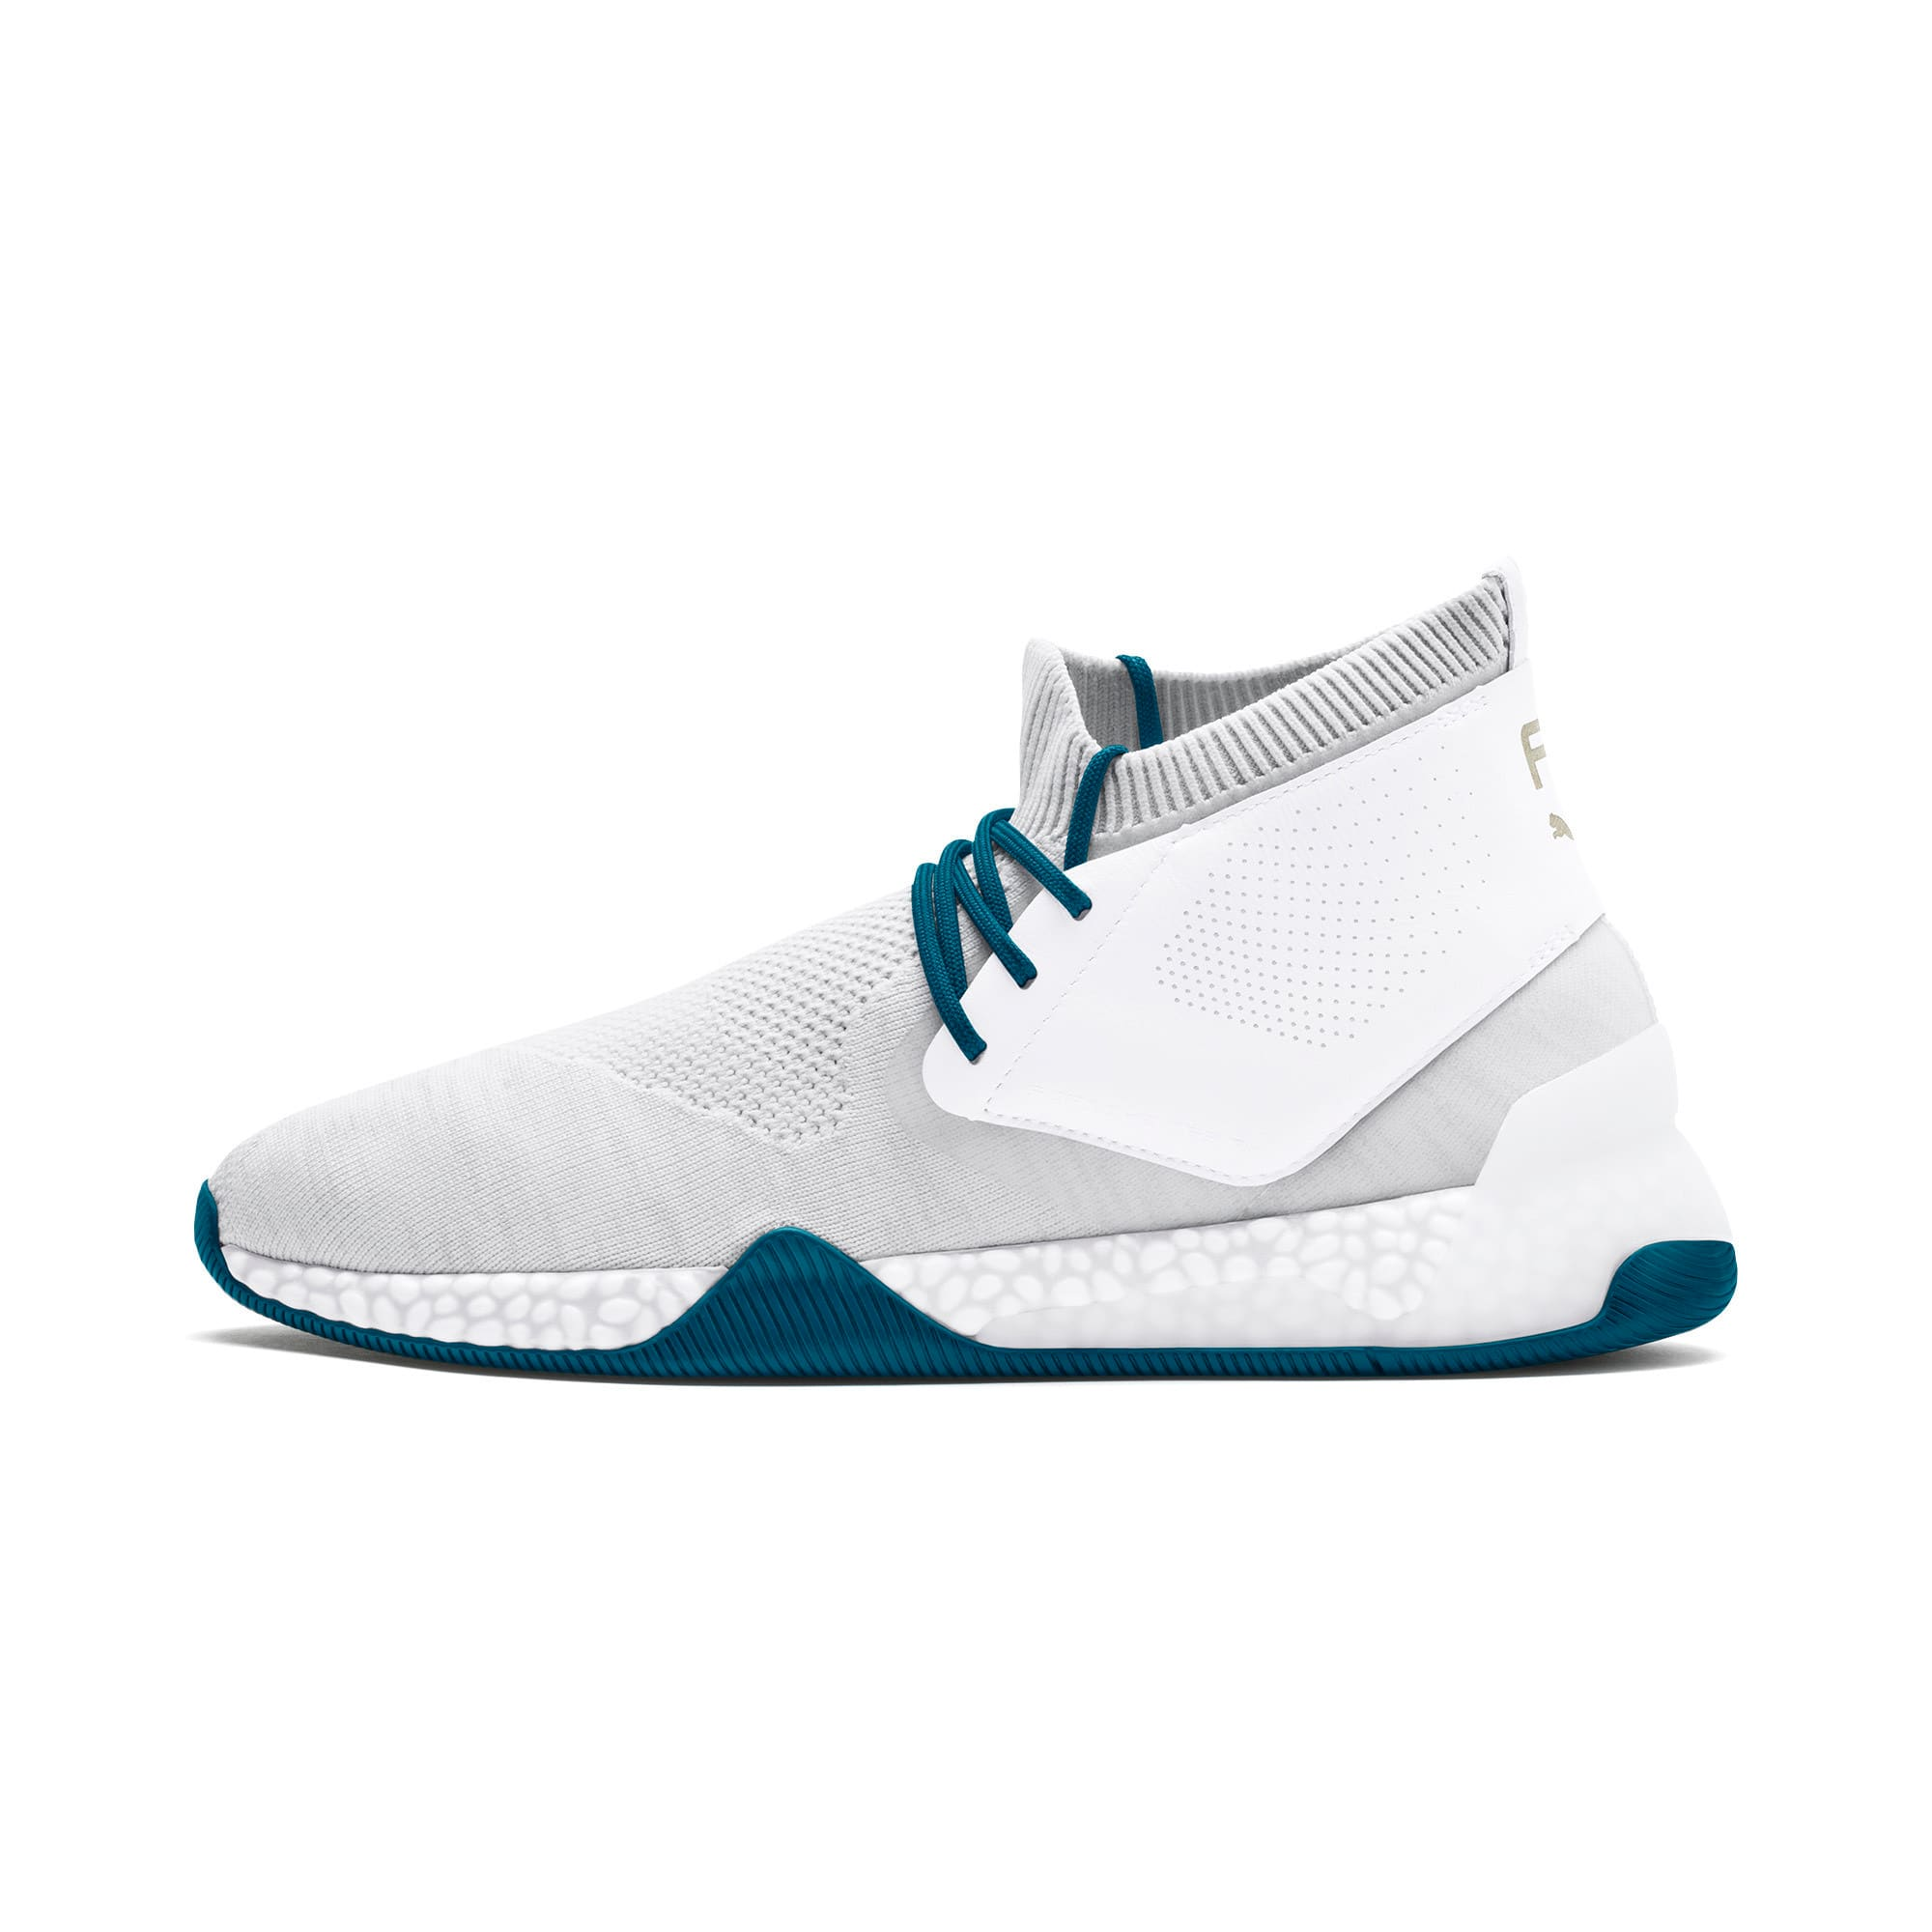 Thumbnail 1 of Porsche Design Hybrid evoKNIT Men's Trainers, White-Gray-Moroccan Blue, medium